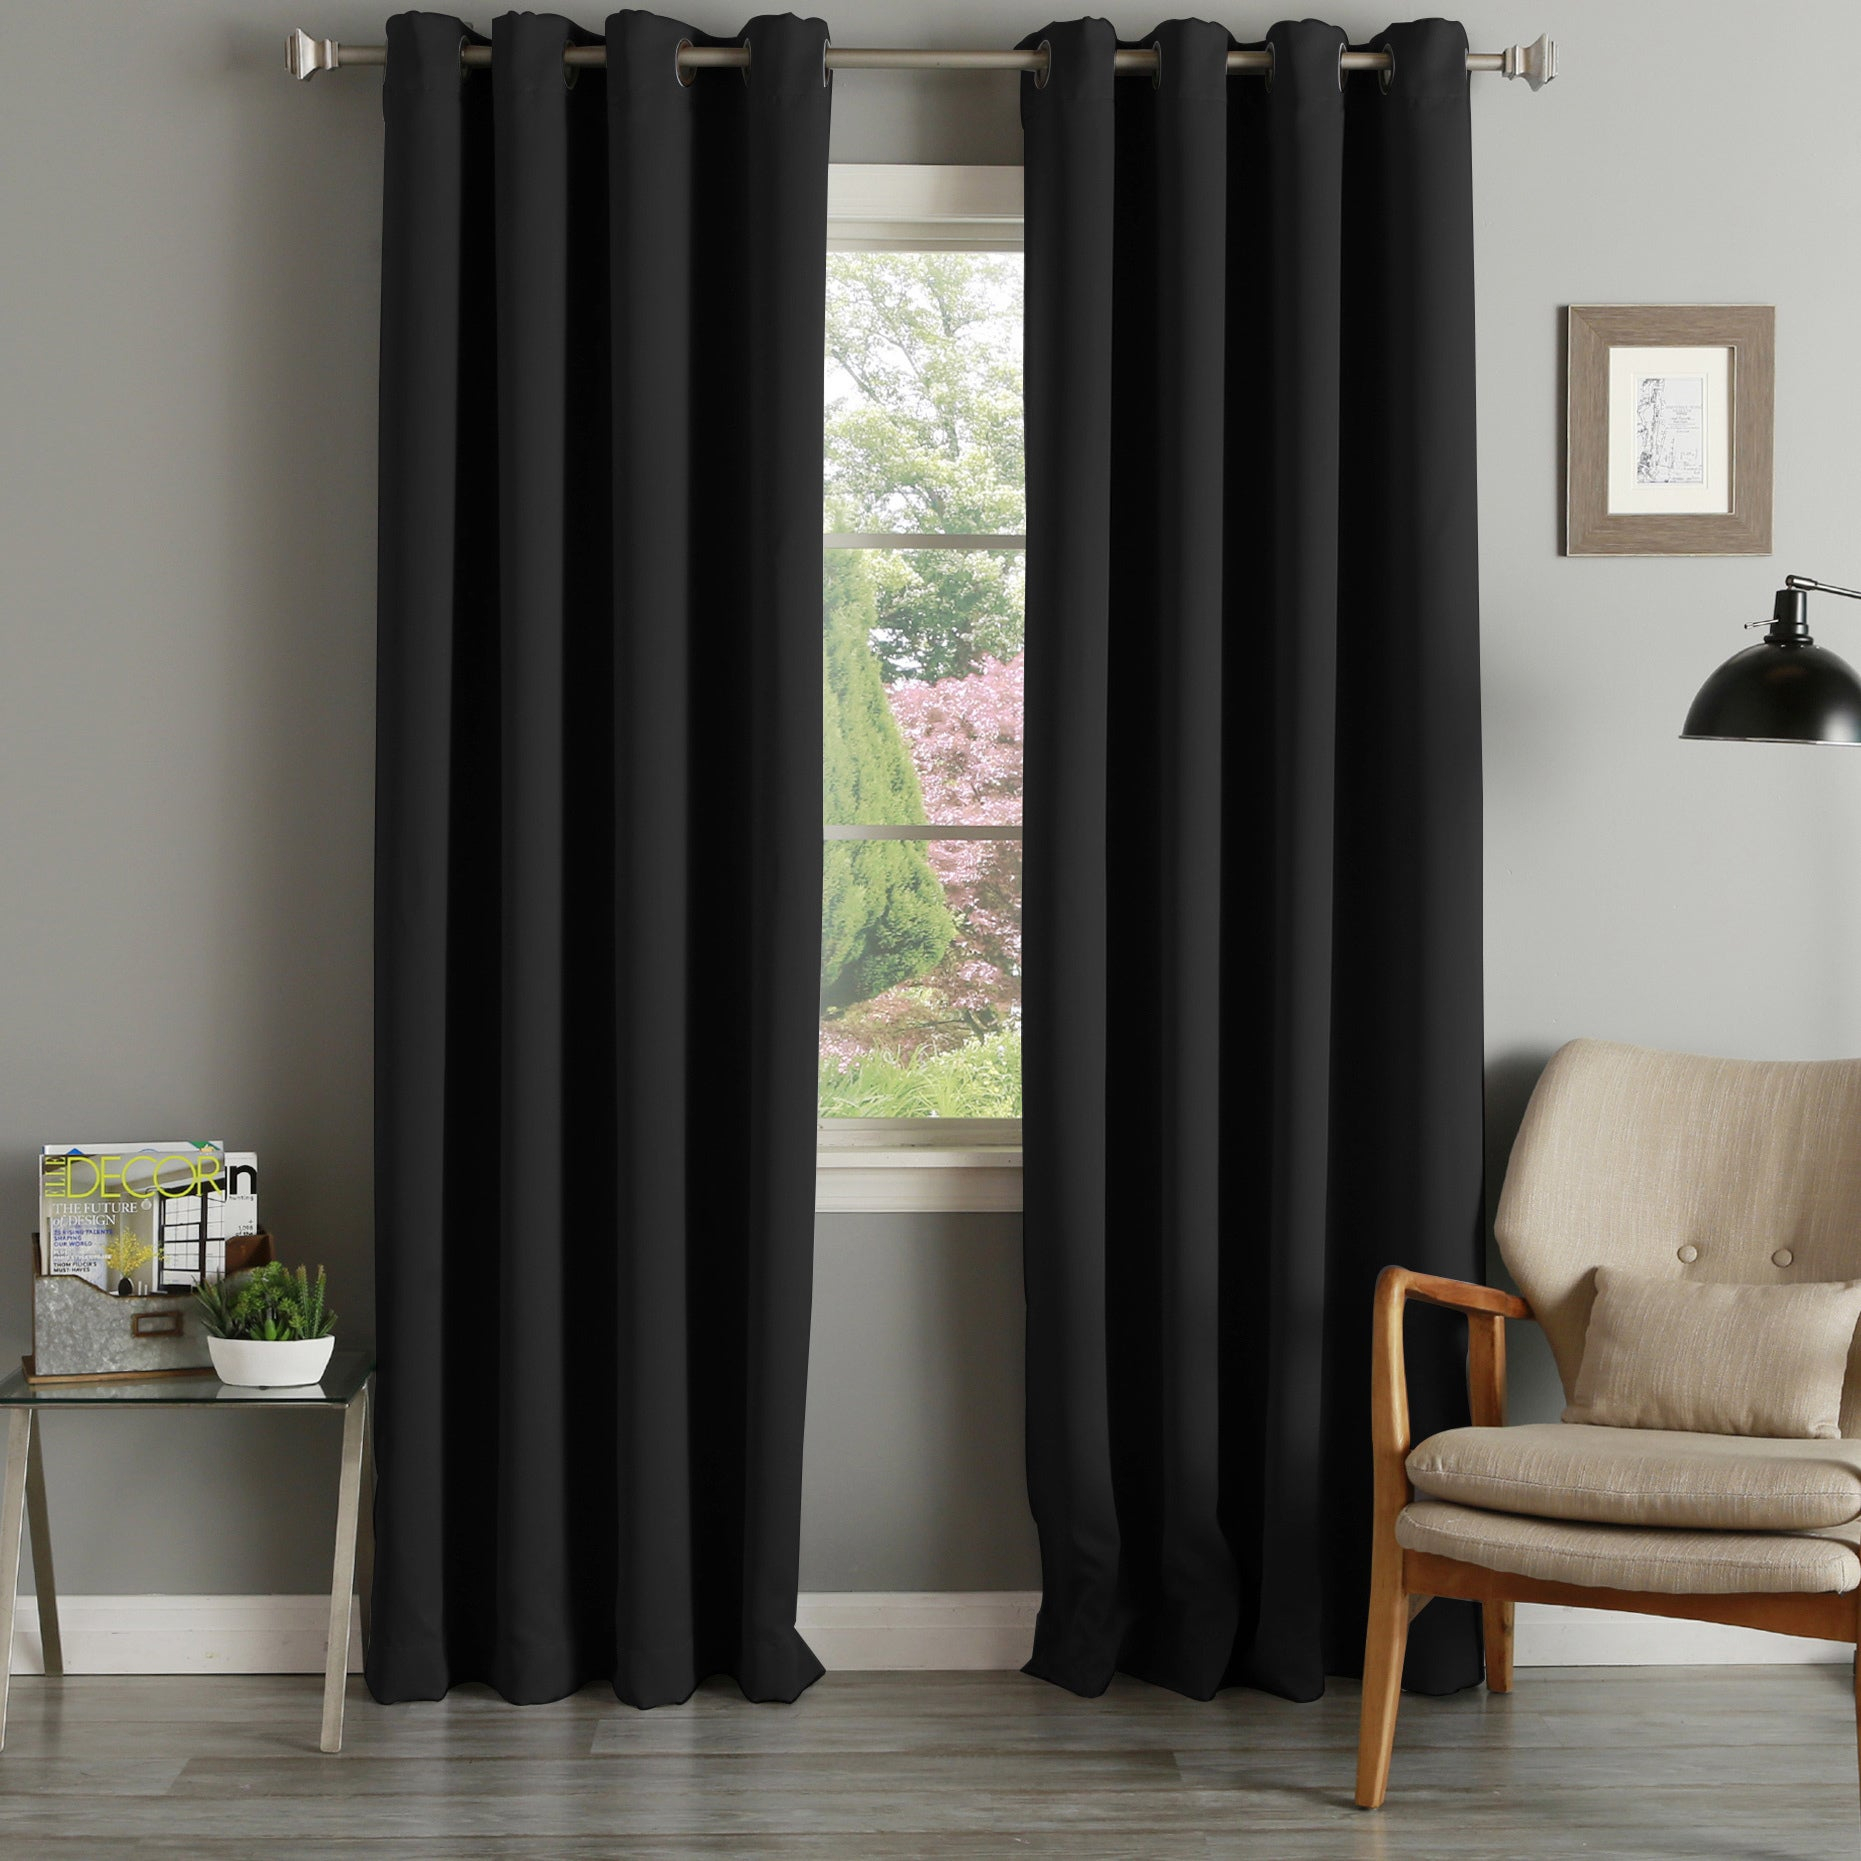 Aurora Home Grommet Top Thermal Insulated 96 Inch Blackout Curtain Panel Pair – 52 X 96 Intended For Thermal Insulated Blackout Curtain Panel Pairs (View 17 of 30)